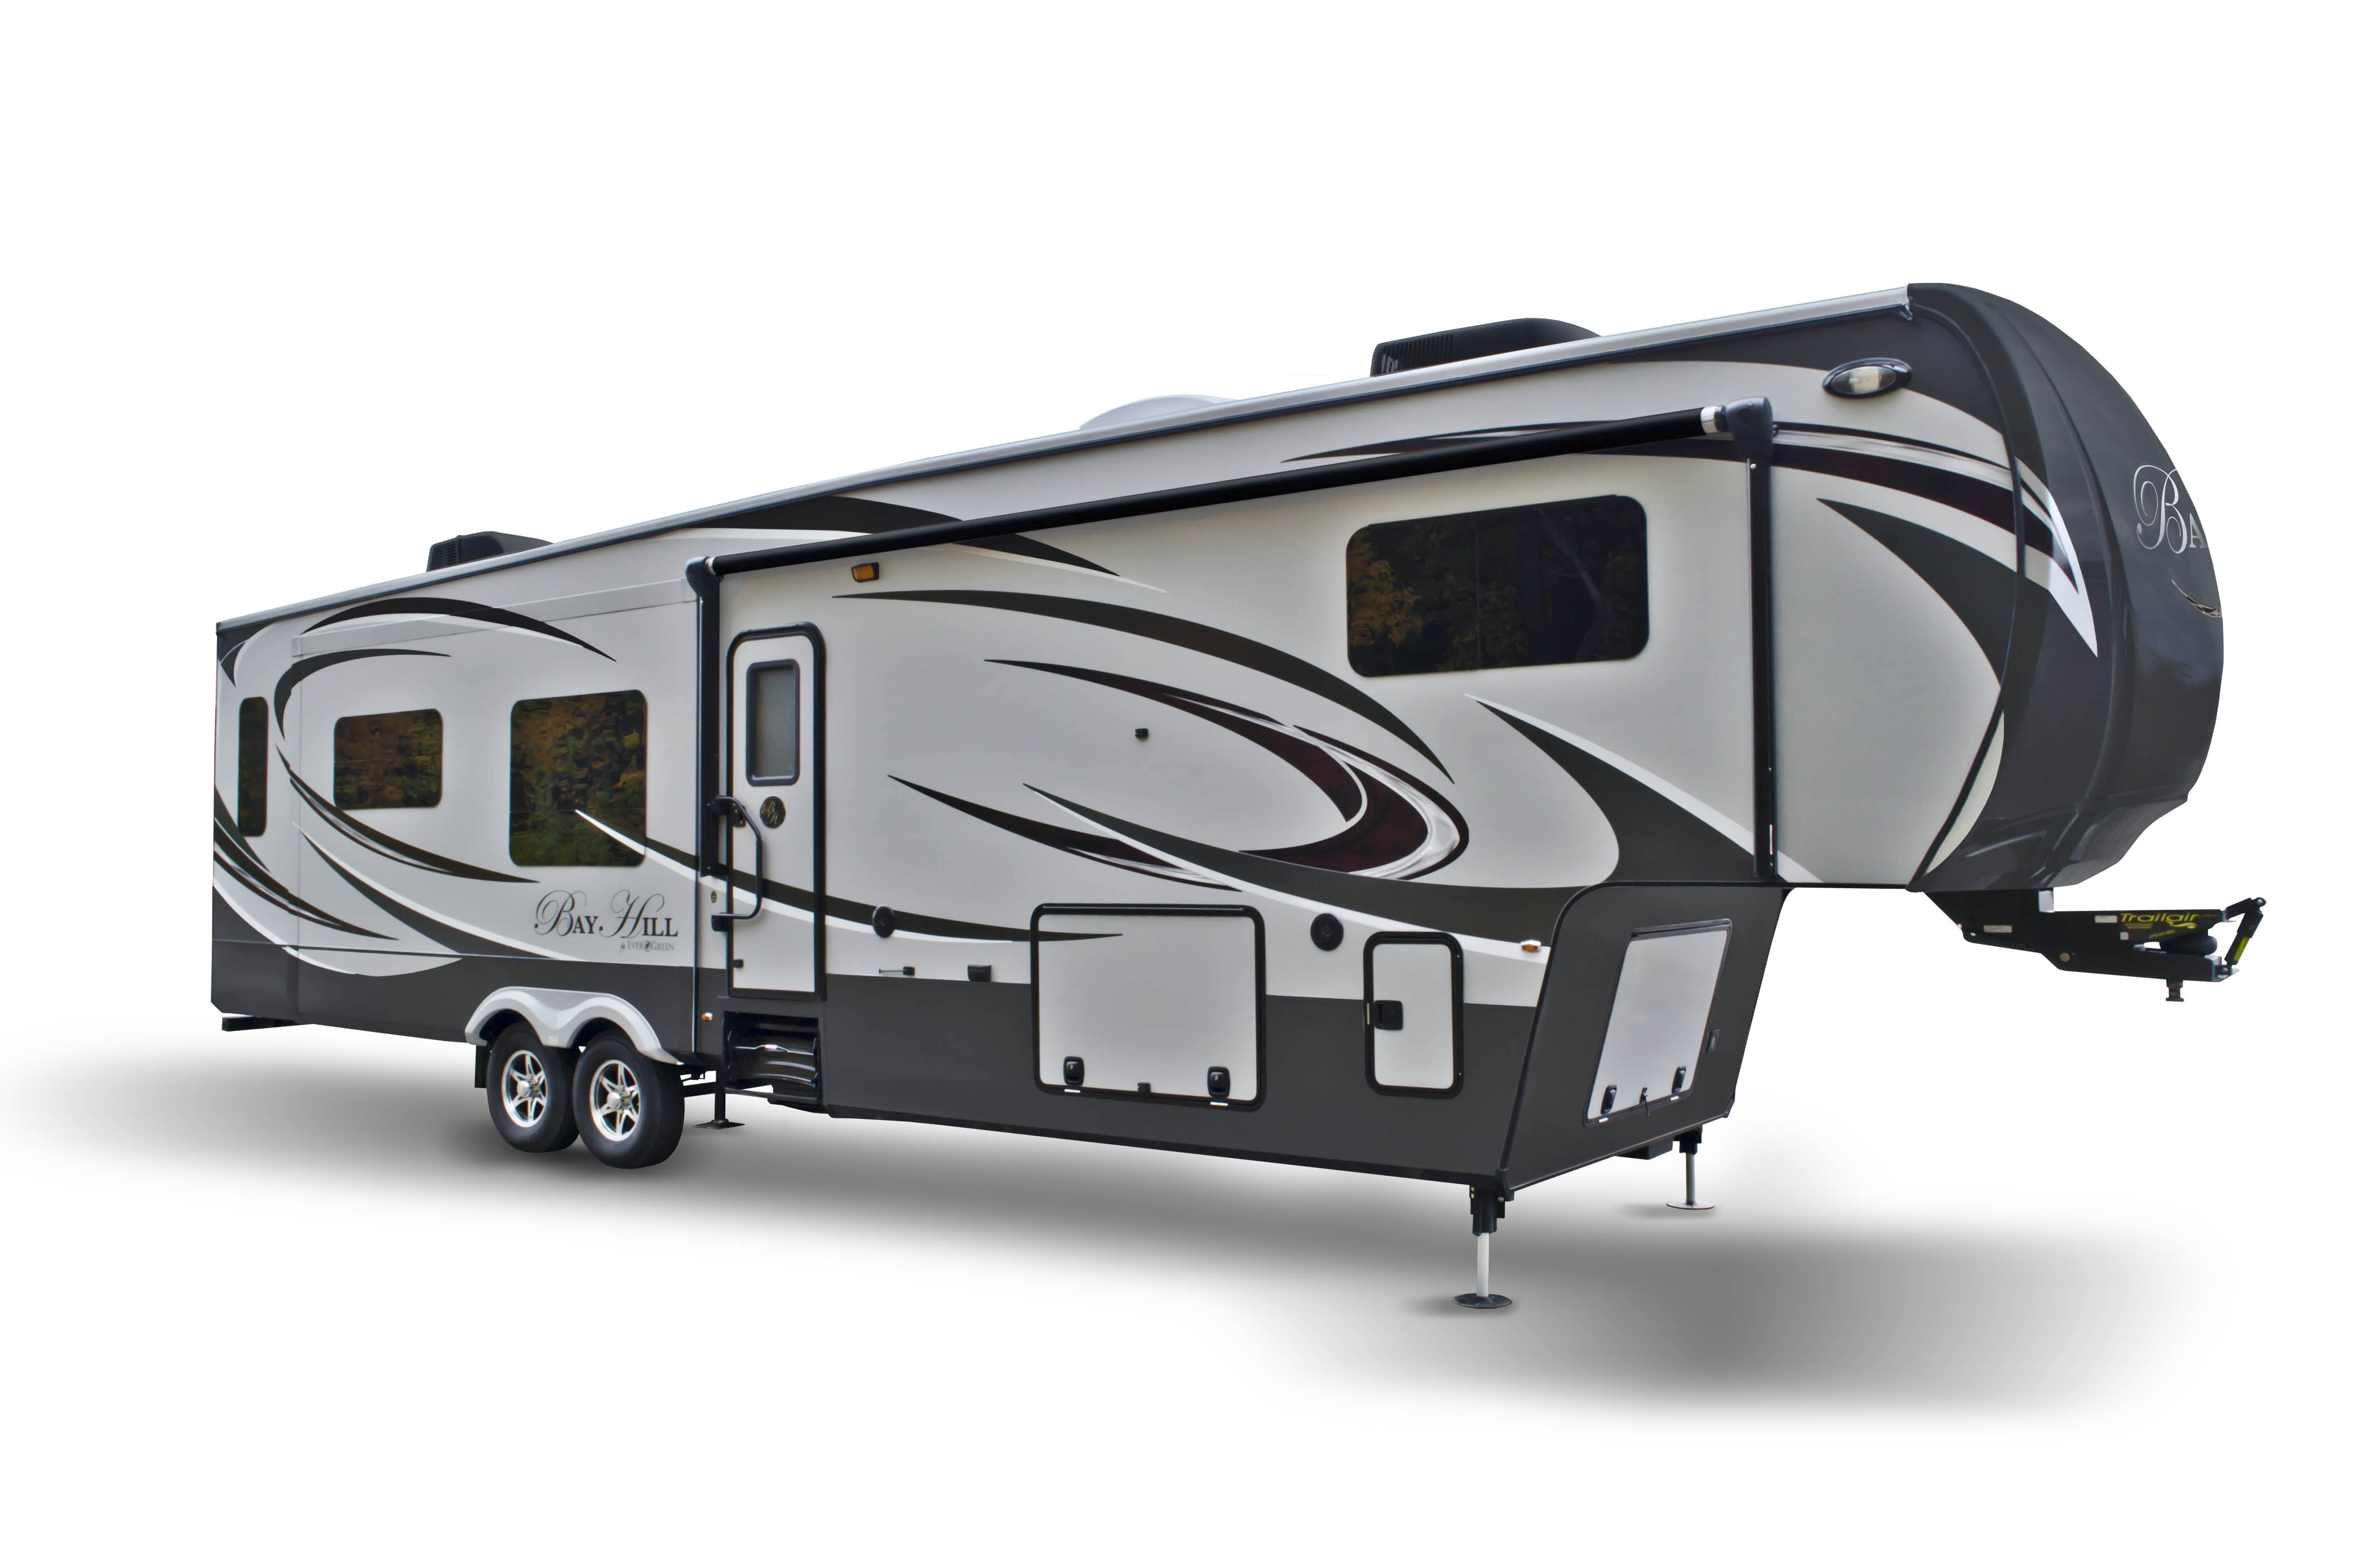 Evergreen Rv S New 2013 Bay Hill Fifth Wheel Best Value And Most Luxurious In Its Class Rv Trader Blog